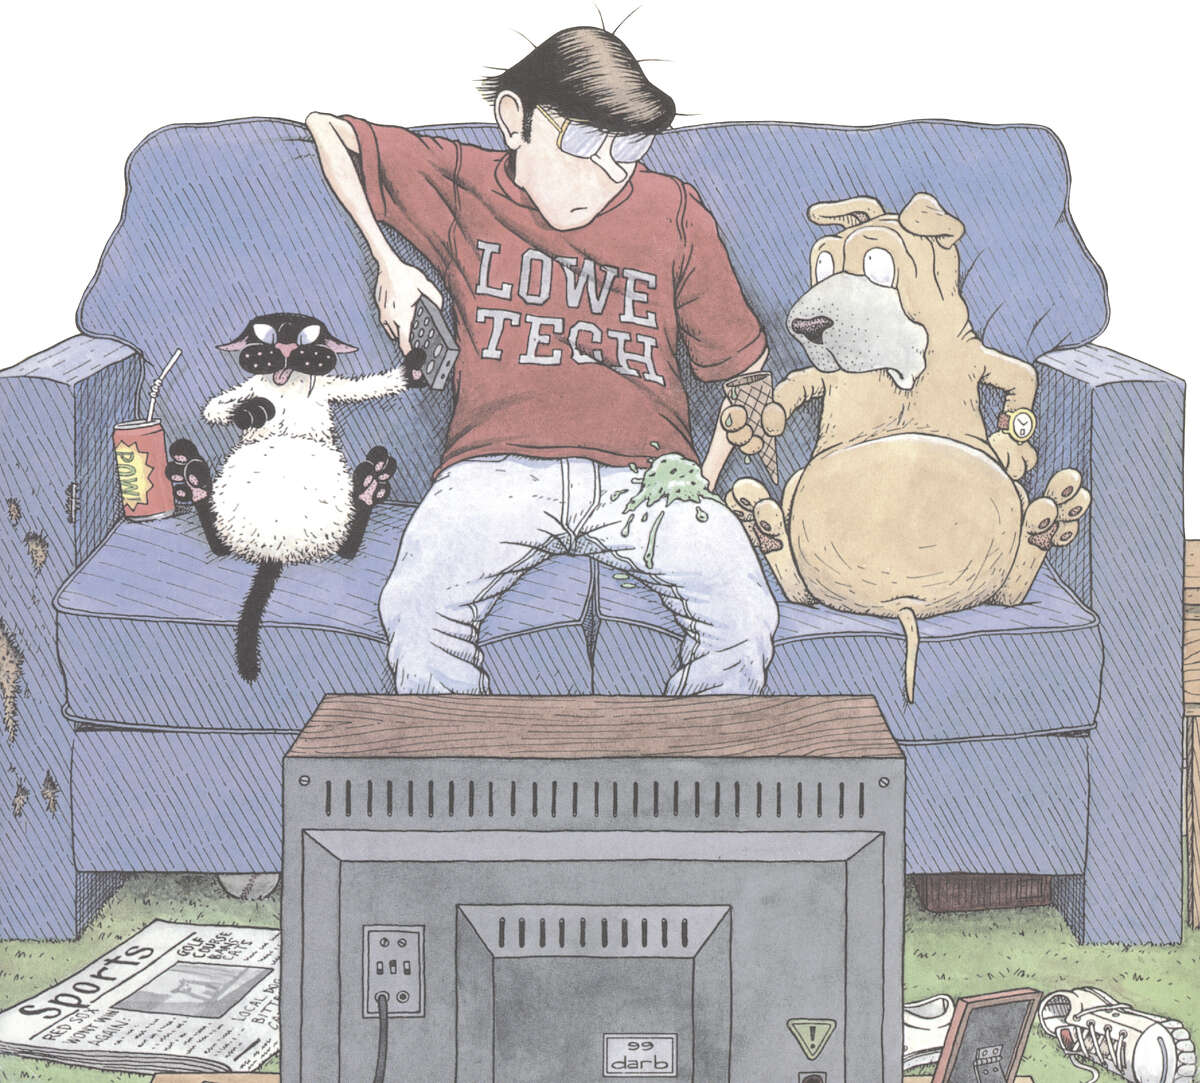 'Get Fuzzy' by Darby Conley takes a wry approach to being owned by a cat.